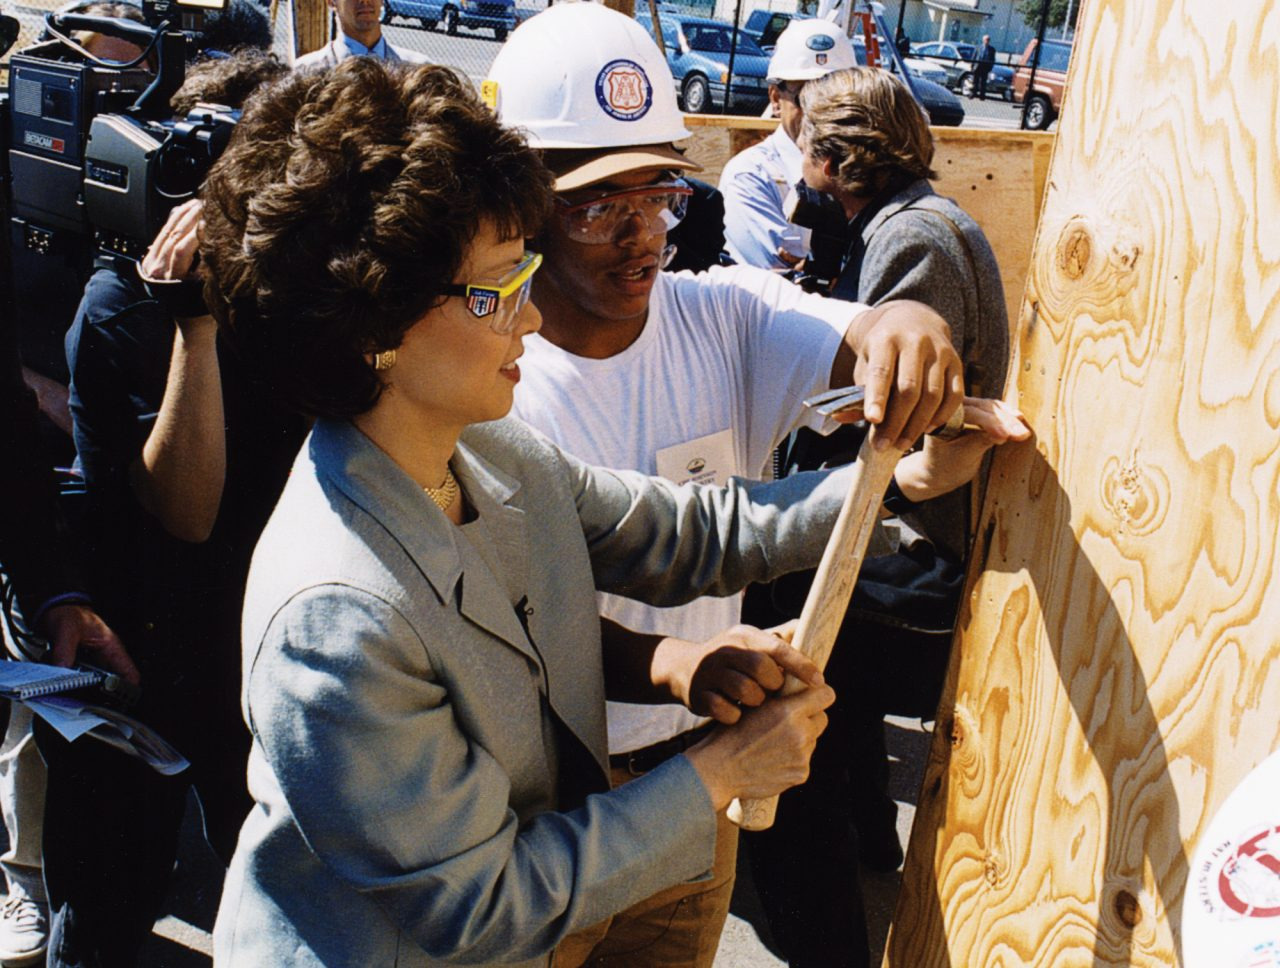 Secretary Elaine Chao visiting a Job Corps apprentice training center.